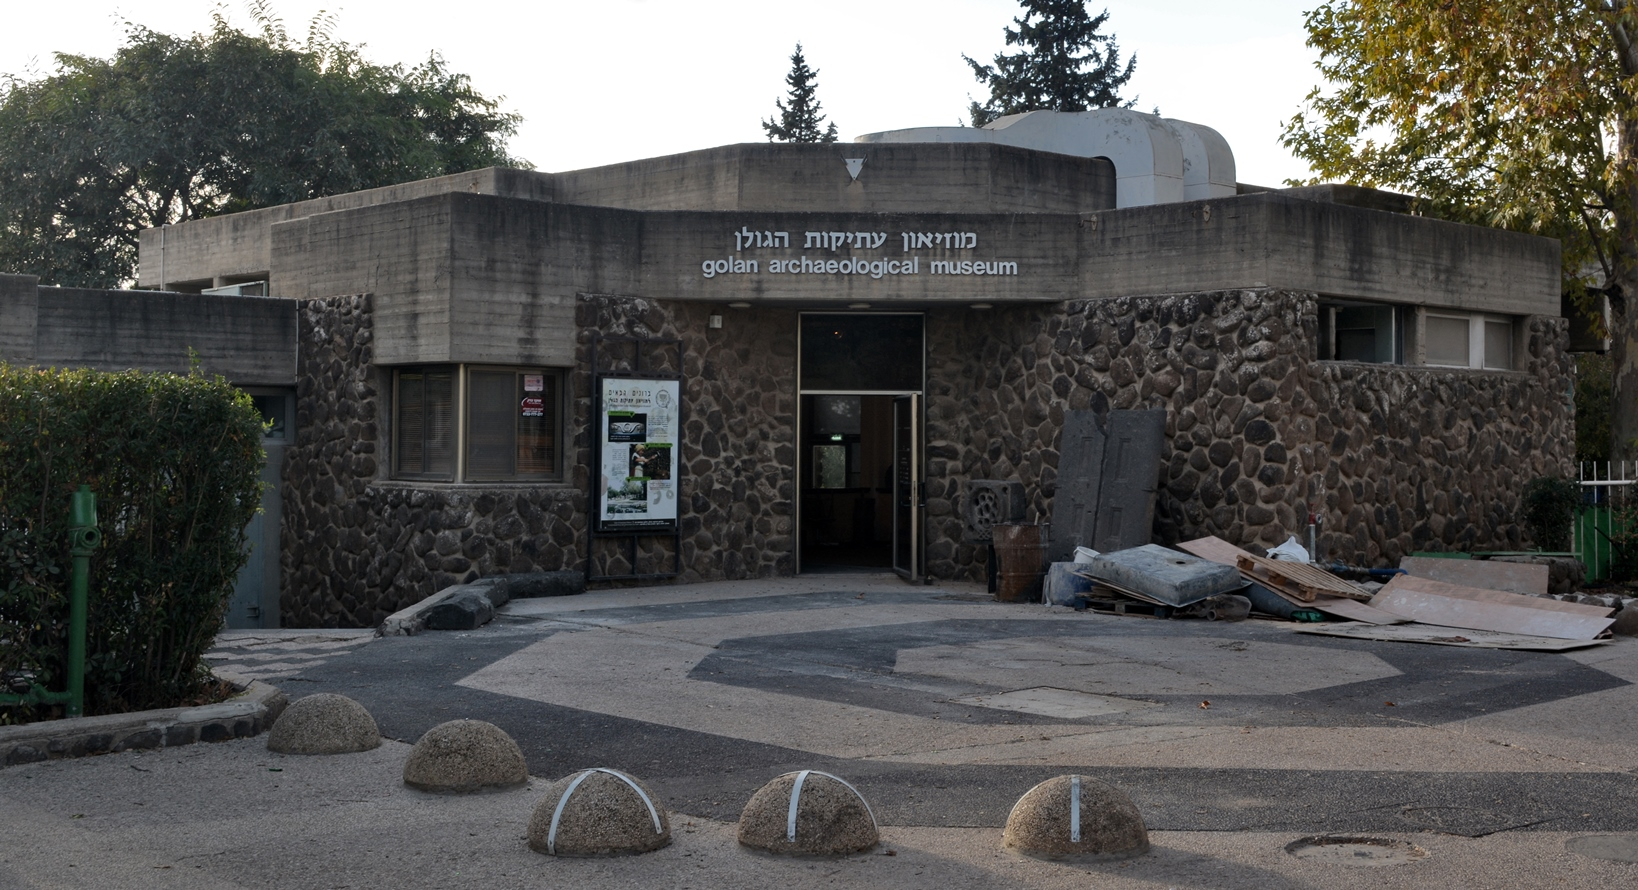 Golan Archeological Museum. Photo courtesy of Wikimedia Commons